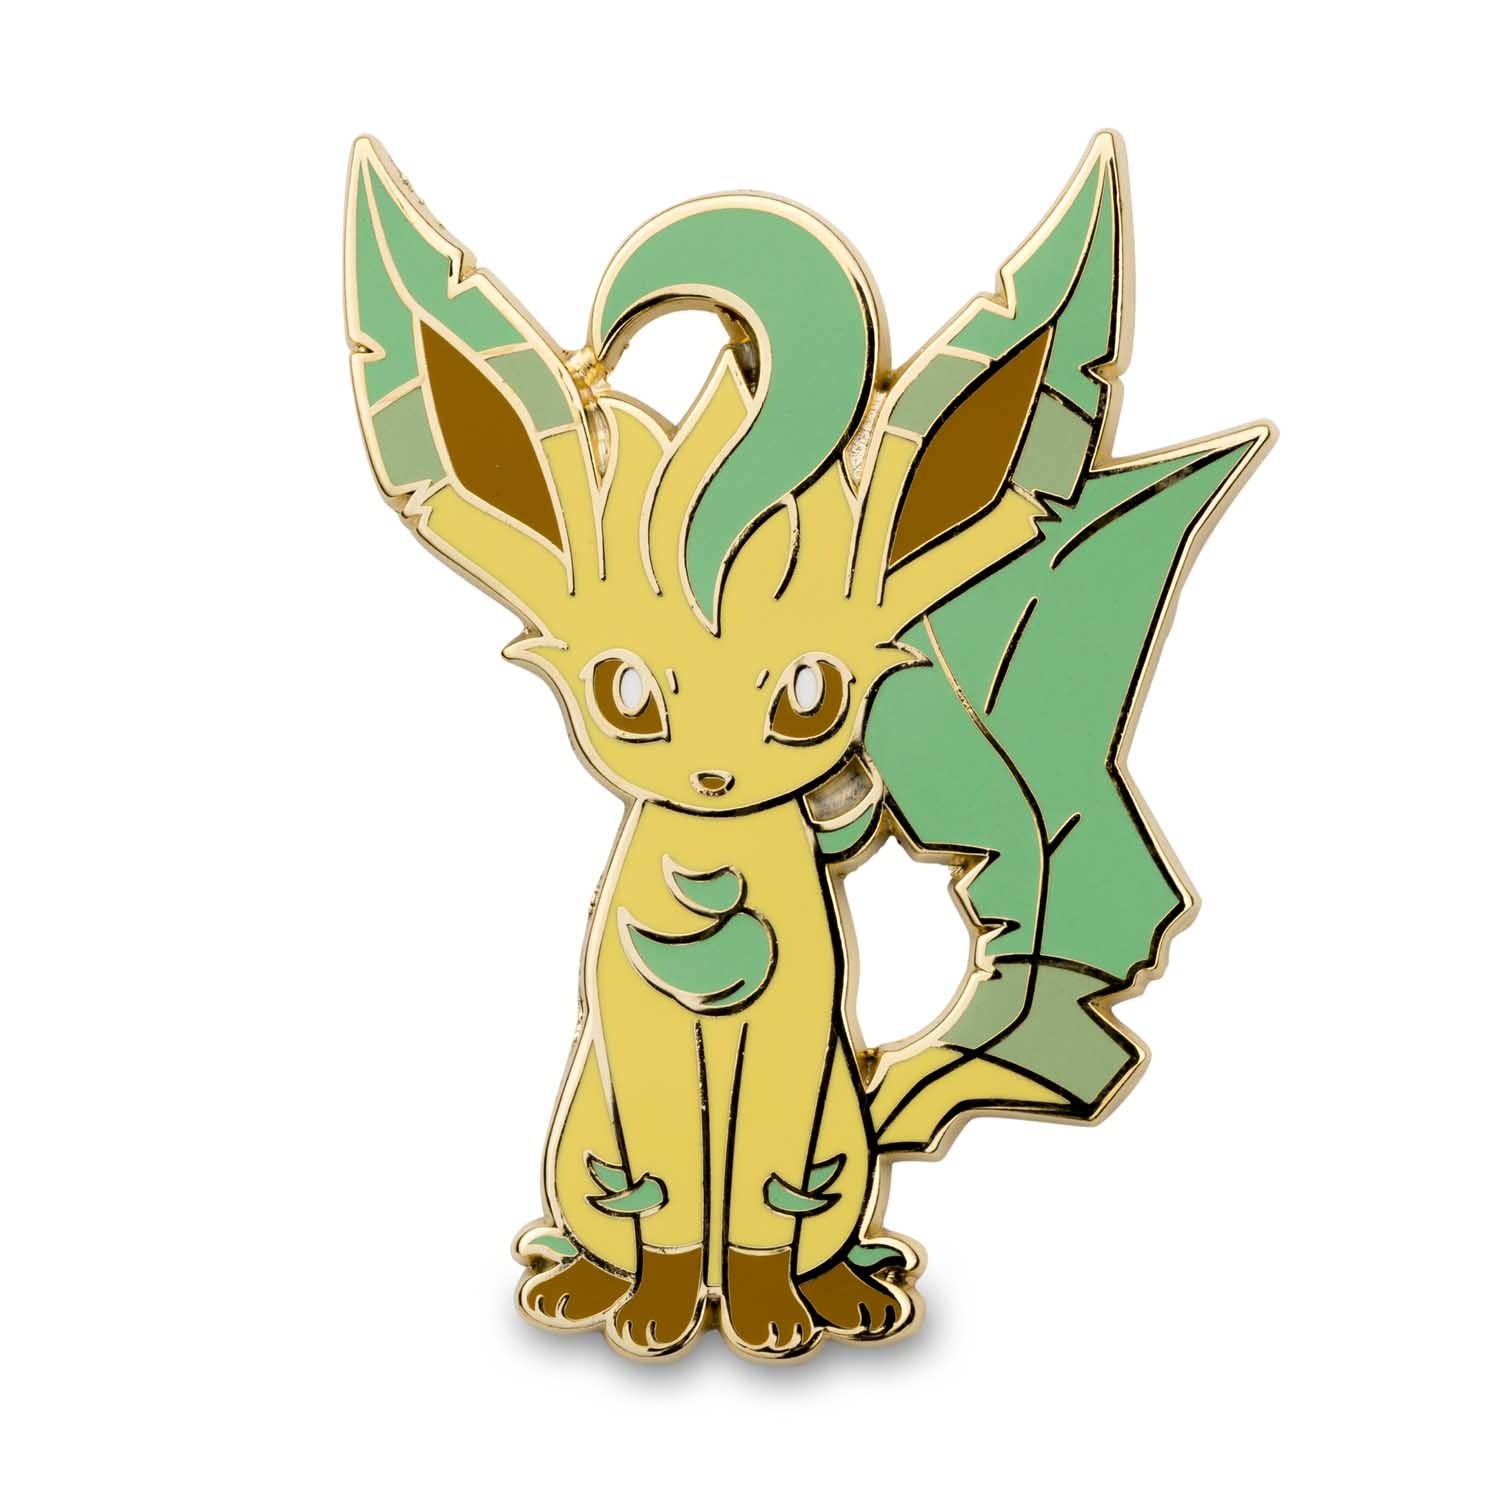 Uncategorized Leafeon leafeon and glaceon pins eevee center original 5 3074457345618259663 3074457345618262055 3074457345618268804